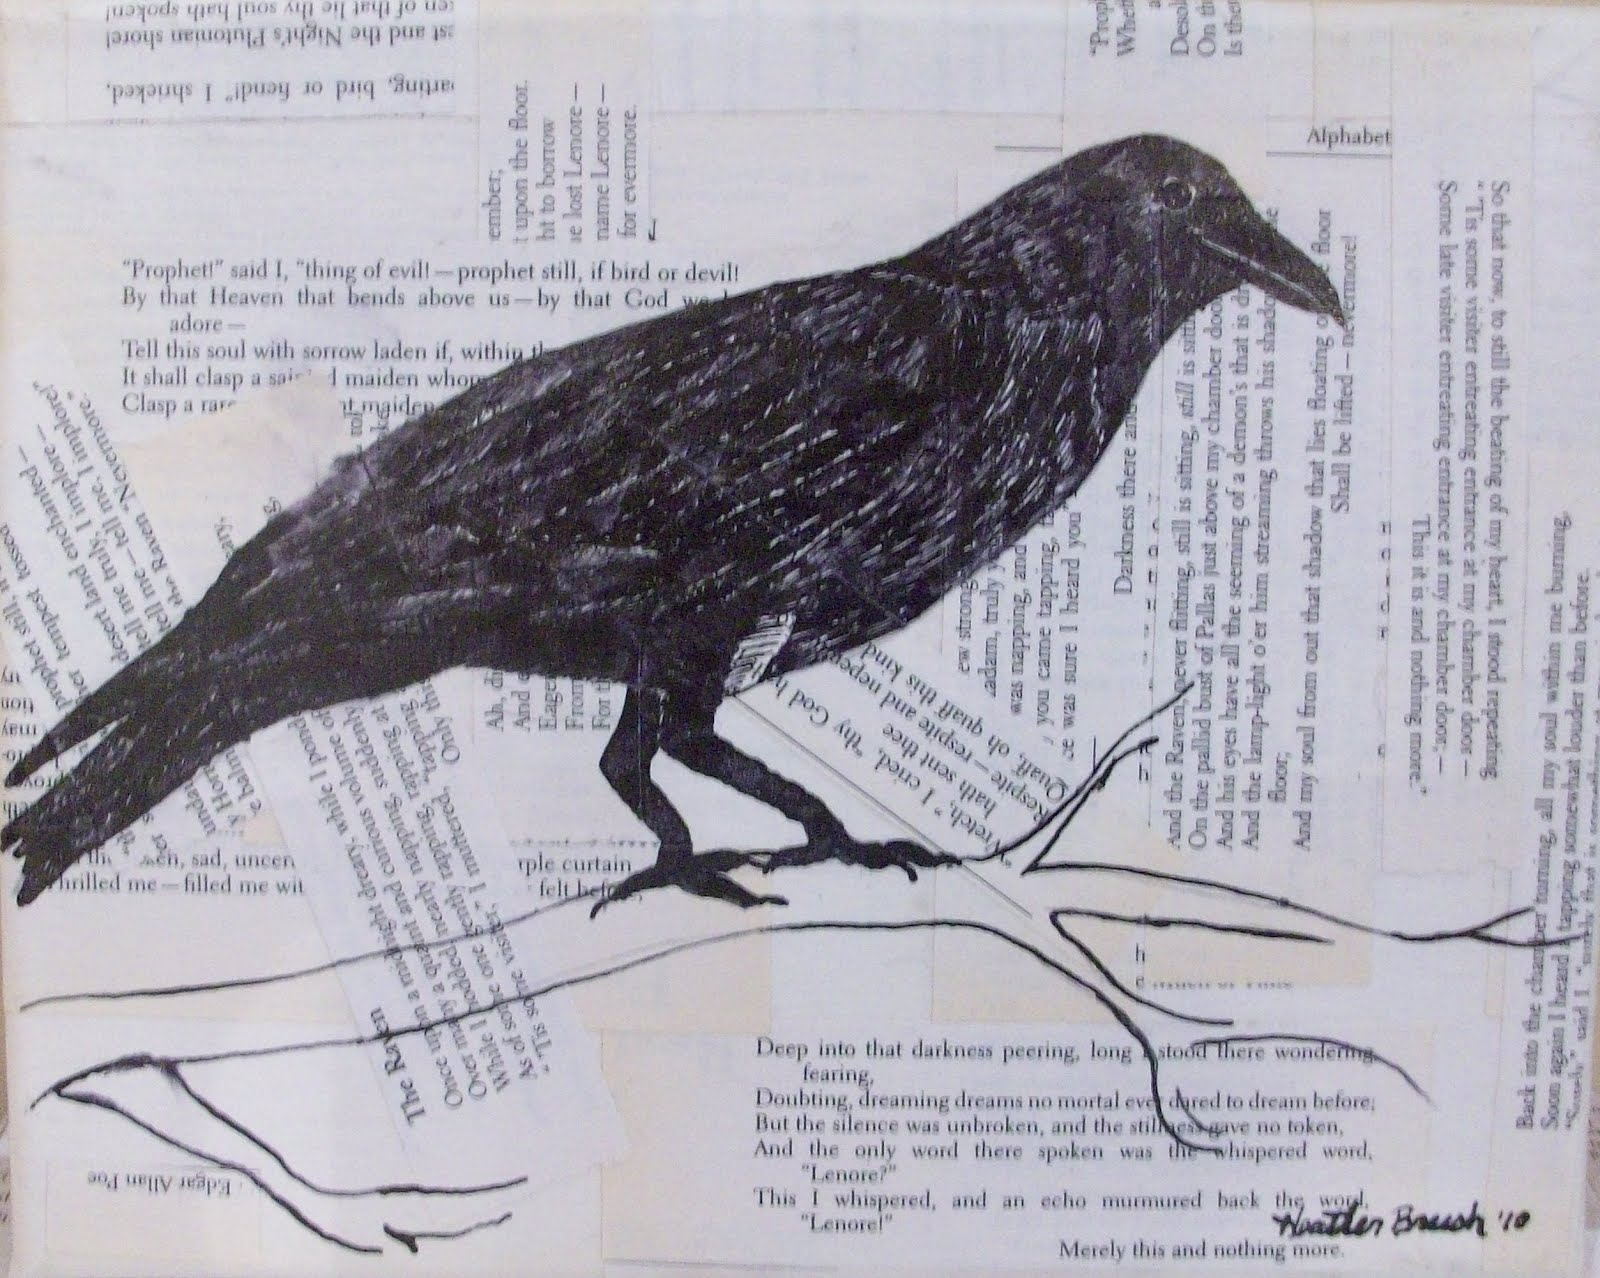 worksheet The Raven Worksheet reading comprehension for esl students edgar allan poe born in the man finds a large black bird and asks it questions raven answers with single word nevermore at end of poem